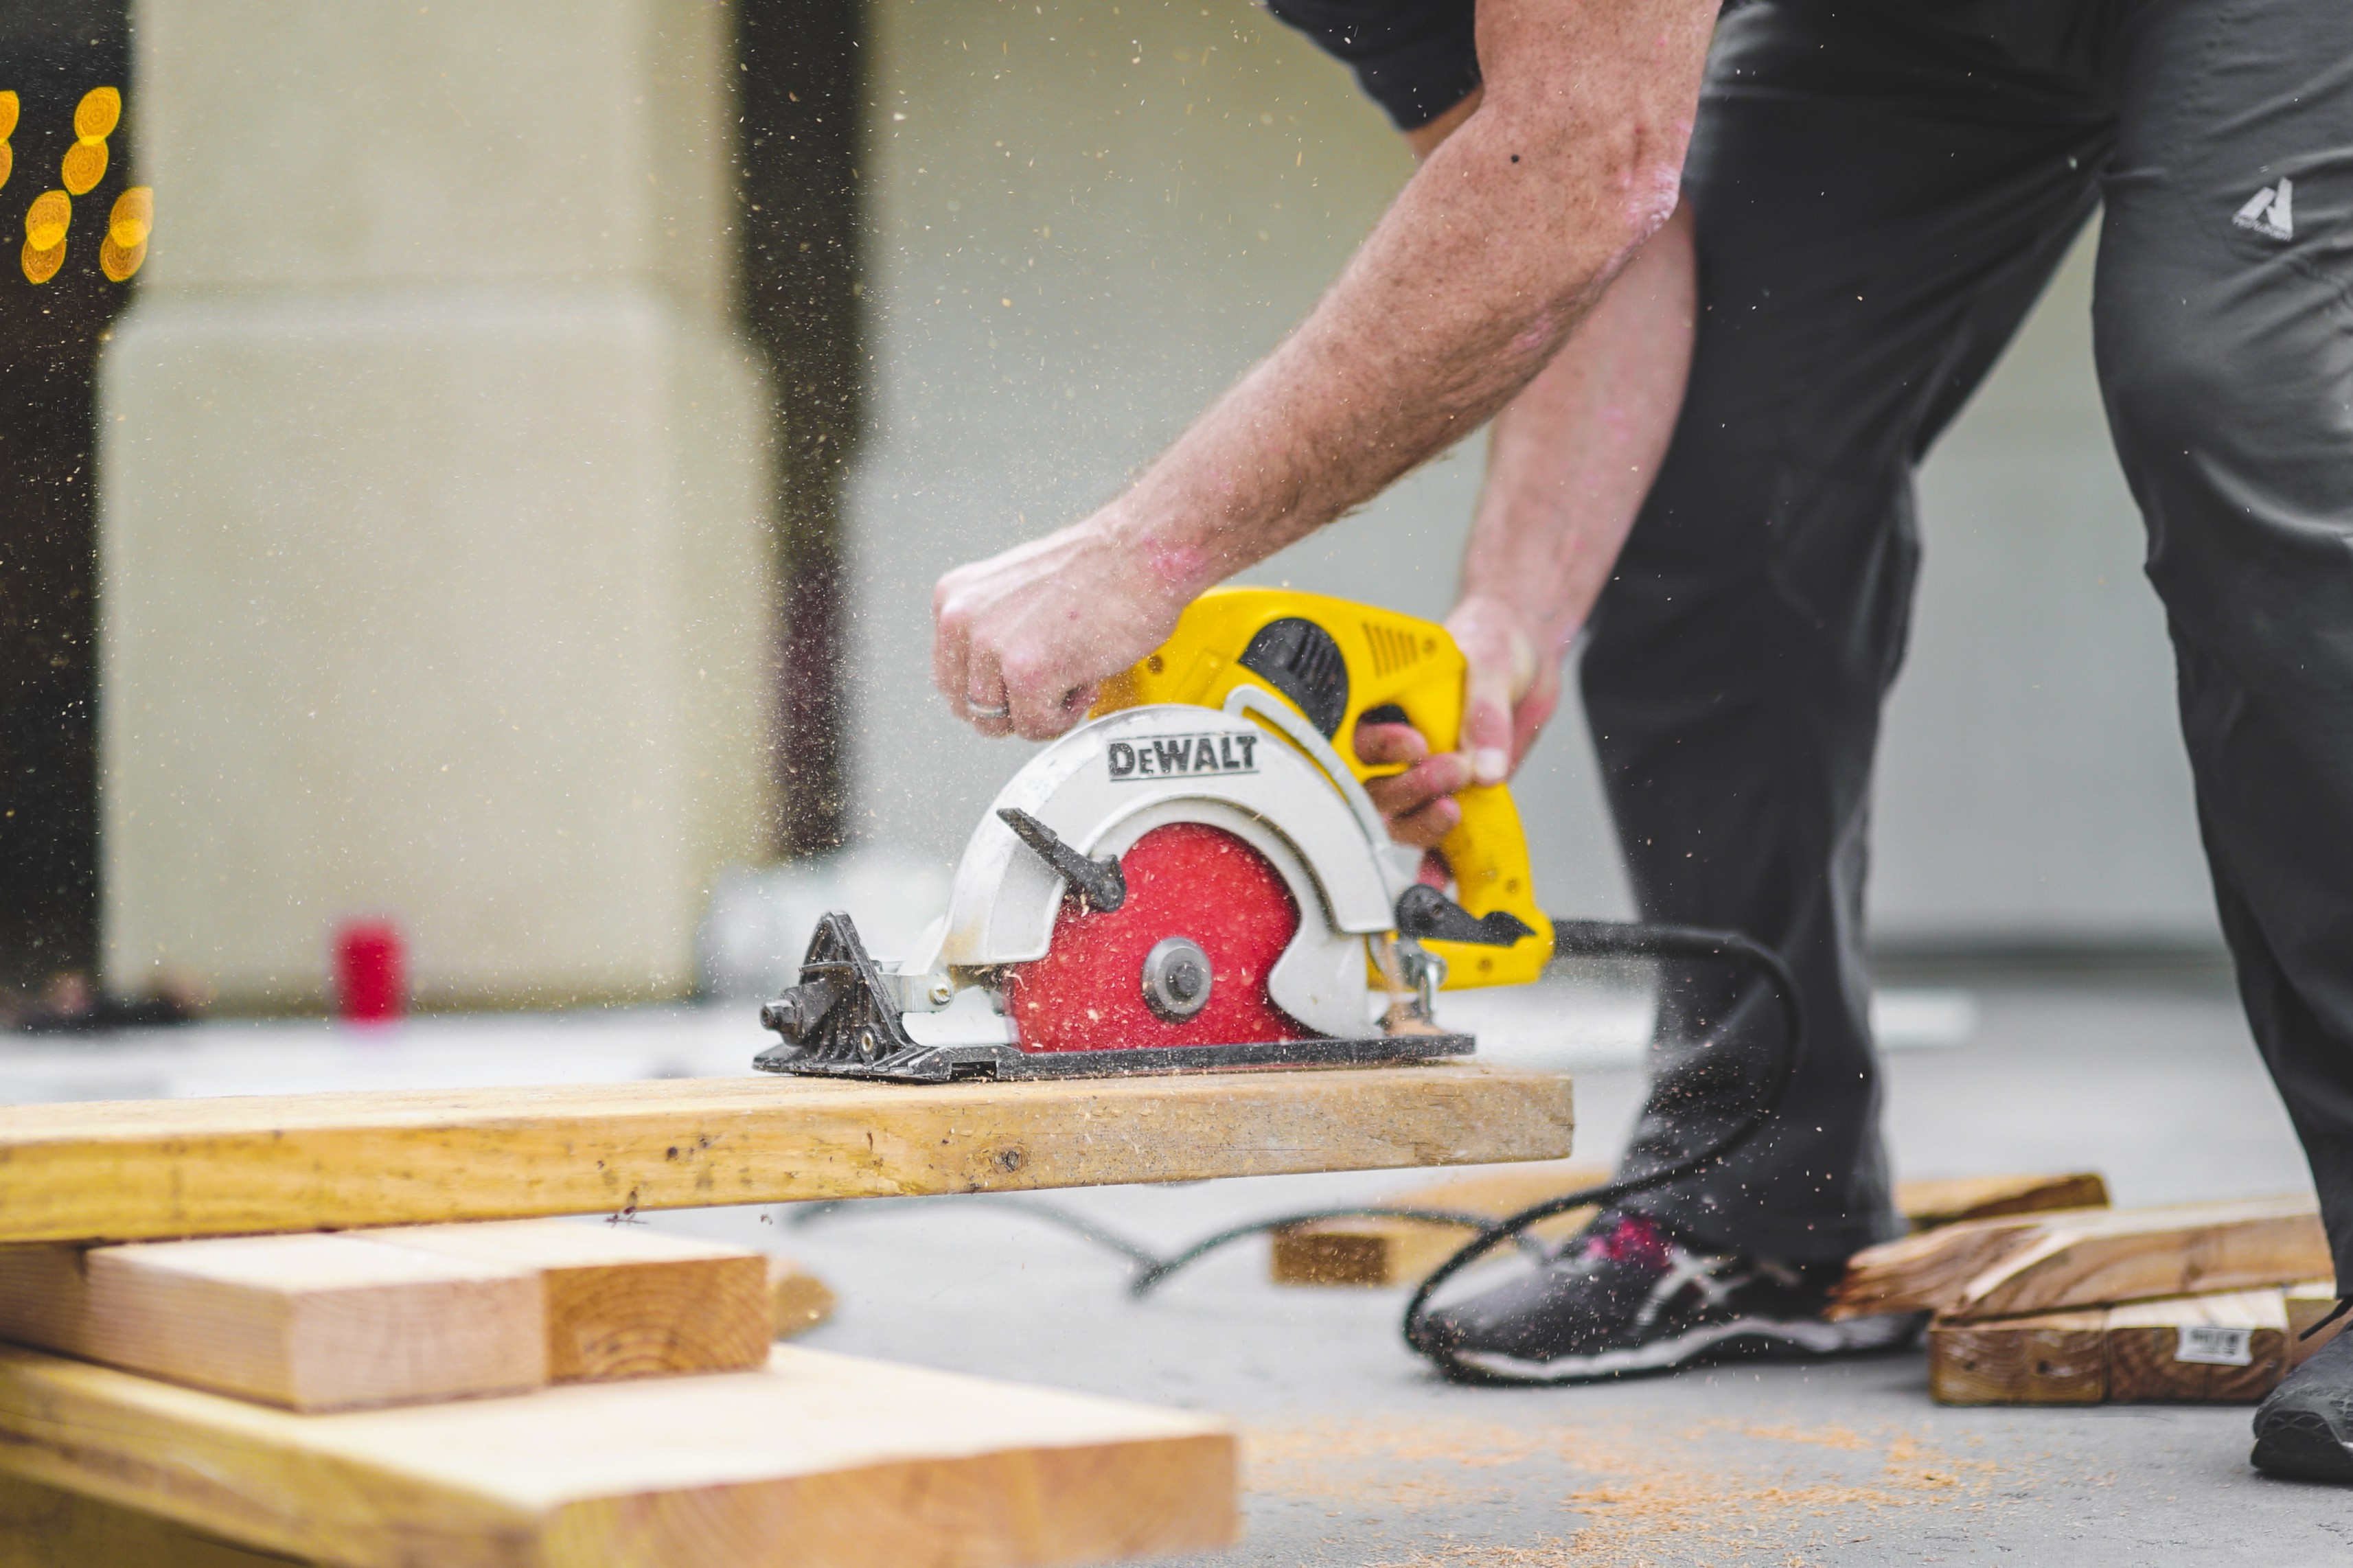 Workers' Compensation: Dangers of Returning to Work Too Soon